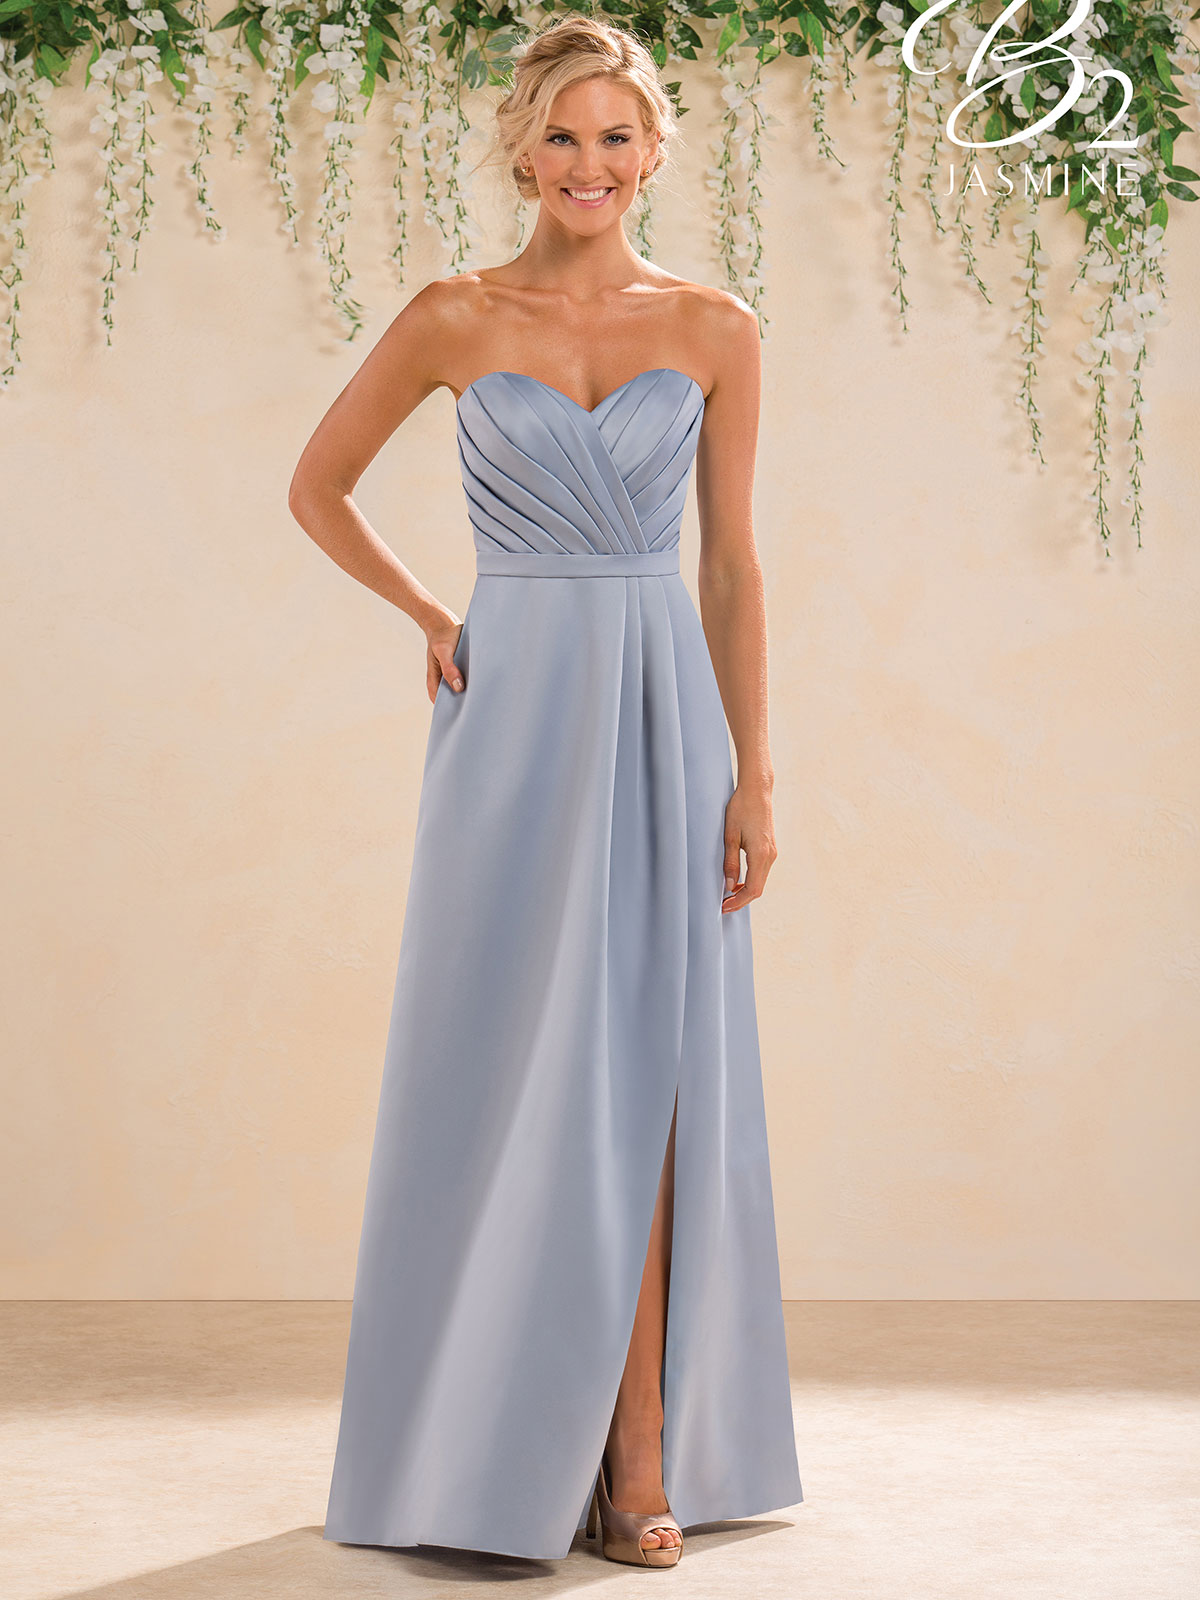 Jasmine b183019 sweetheart satin a line bridesmaid dress jasmine b183019 sweetheart pleated bridesmaid dress ombrellifo Images